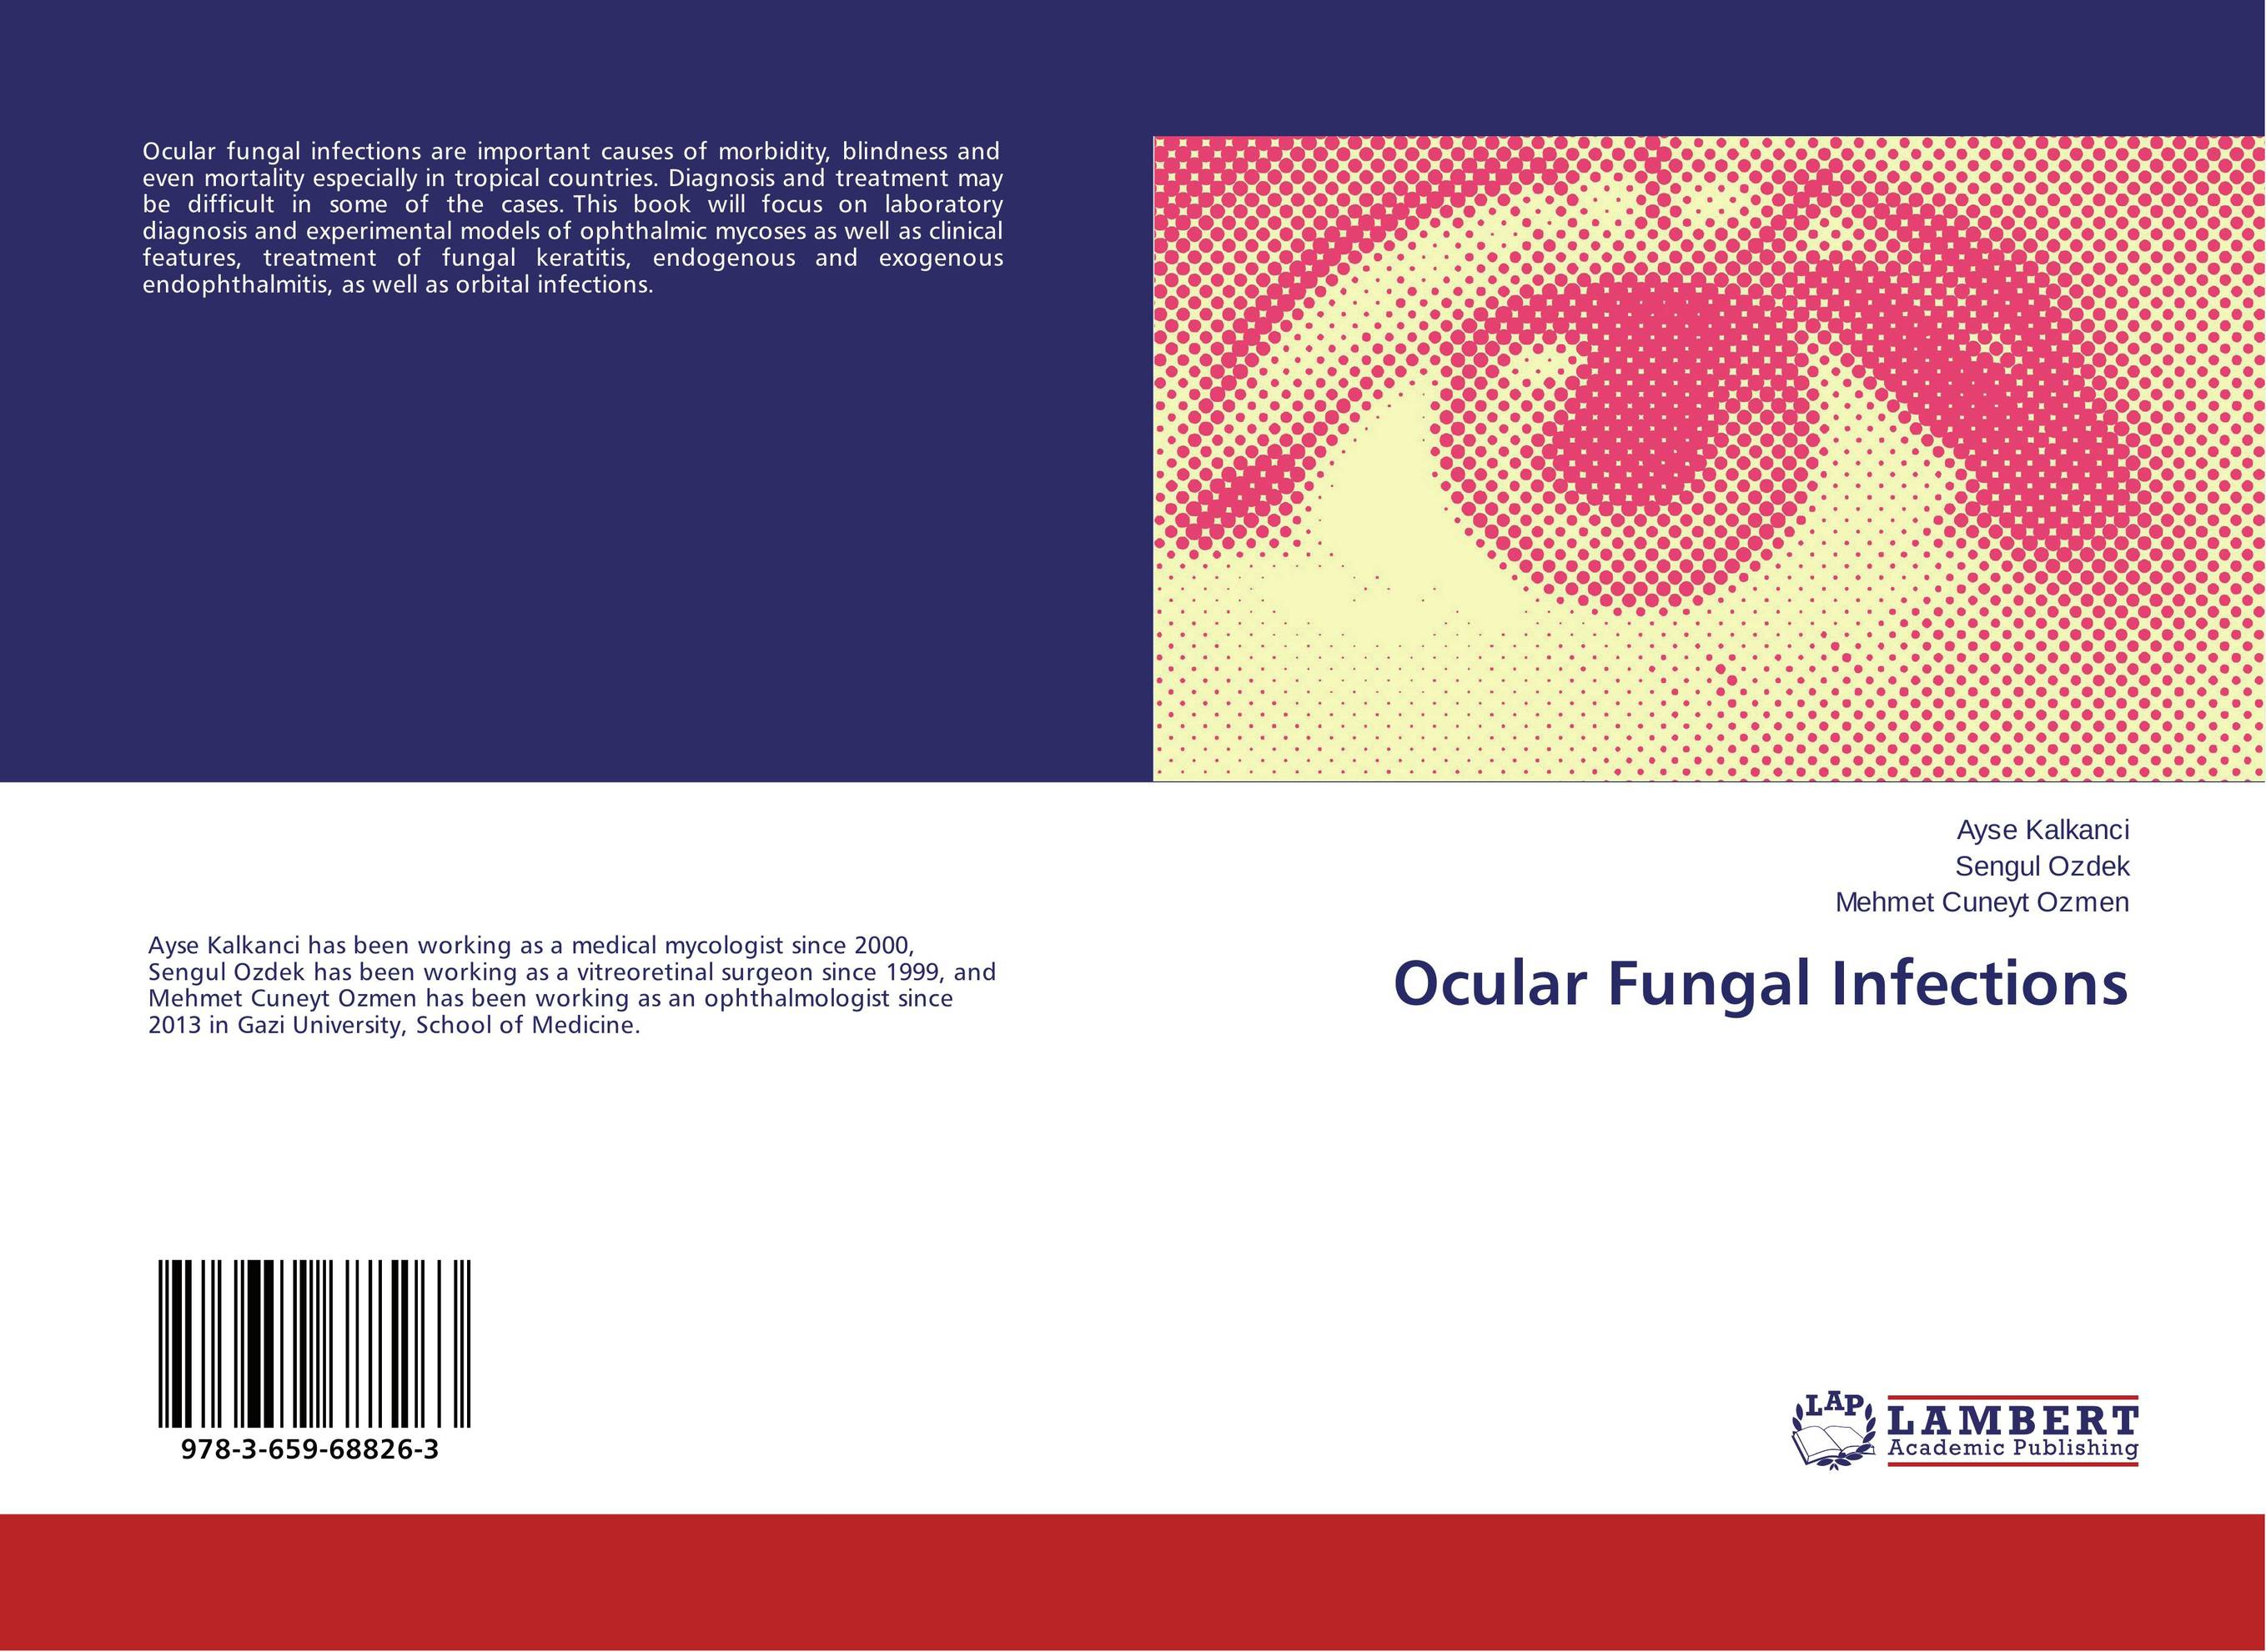 Ocular Fungal Infections